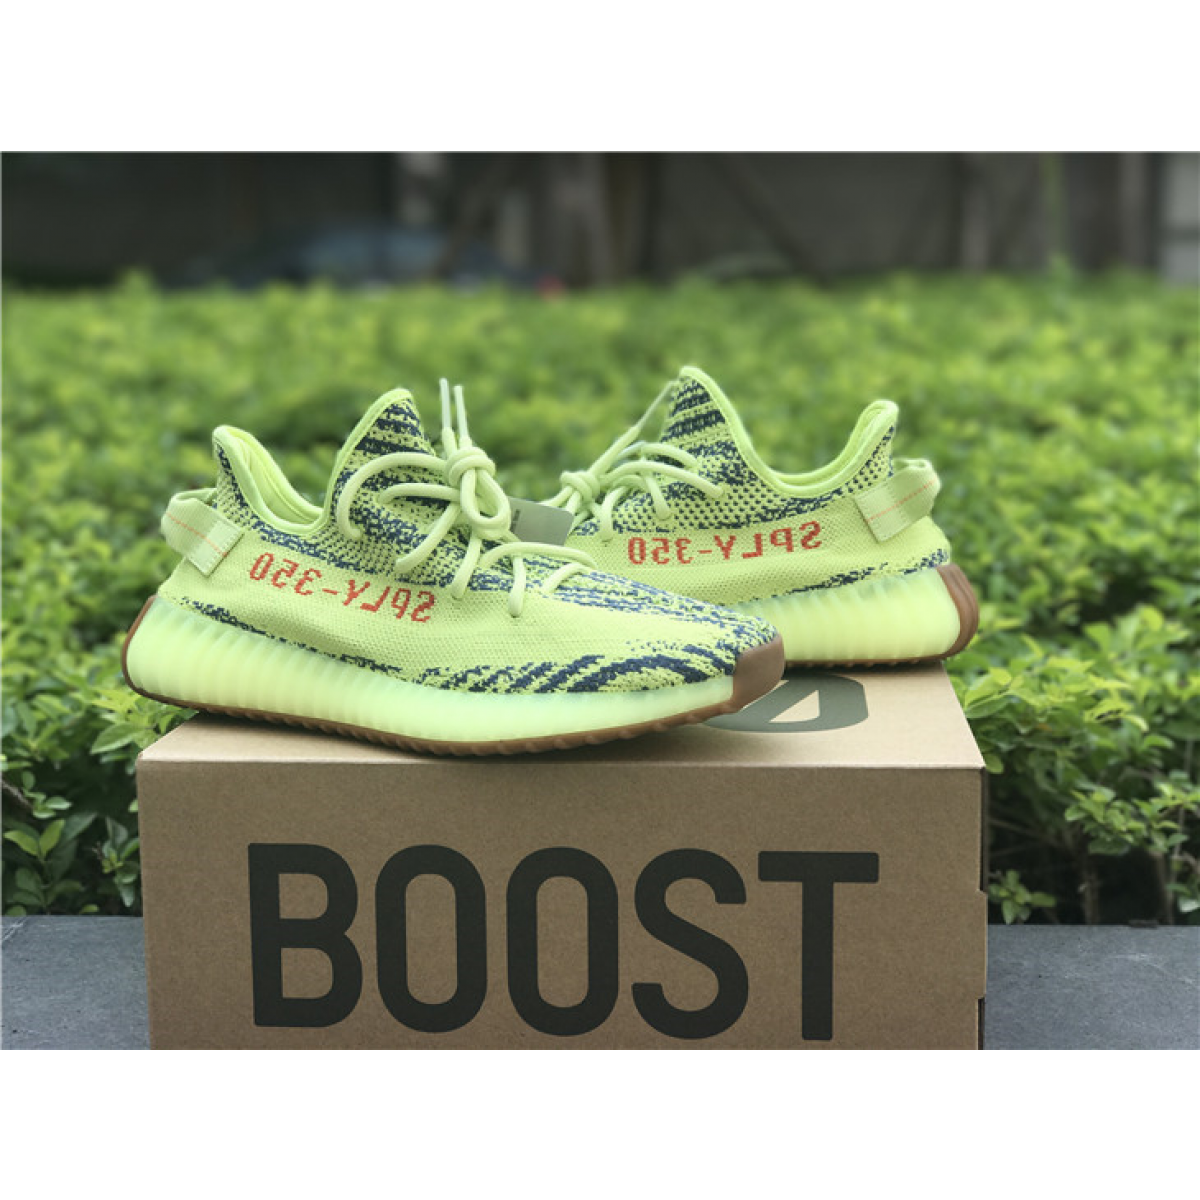 Adidas Yeezy Boost 350 V2 Semi Frozen Yellow Shoes 08c9199a7